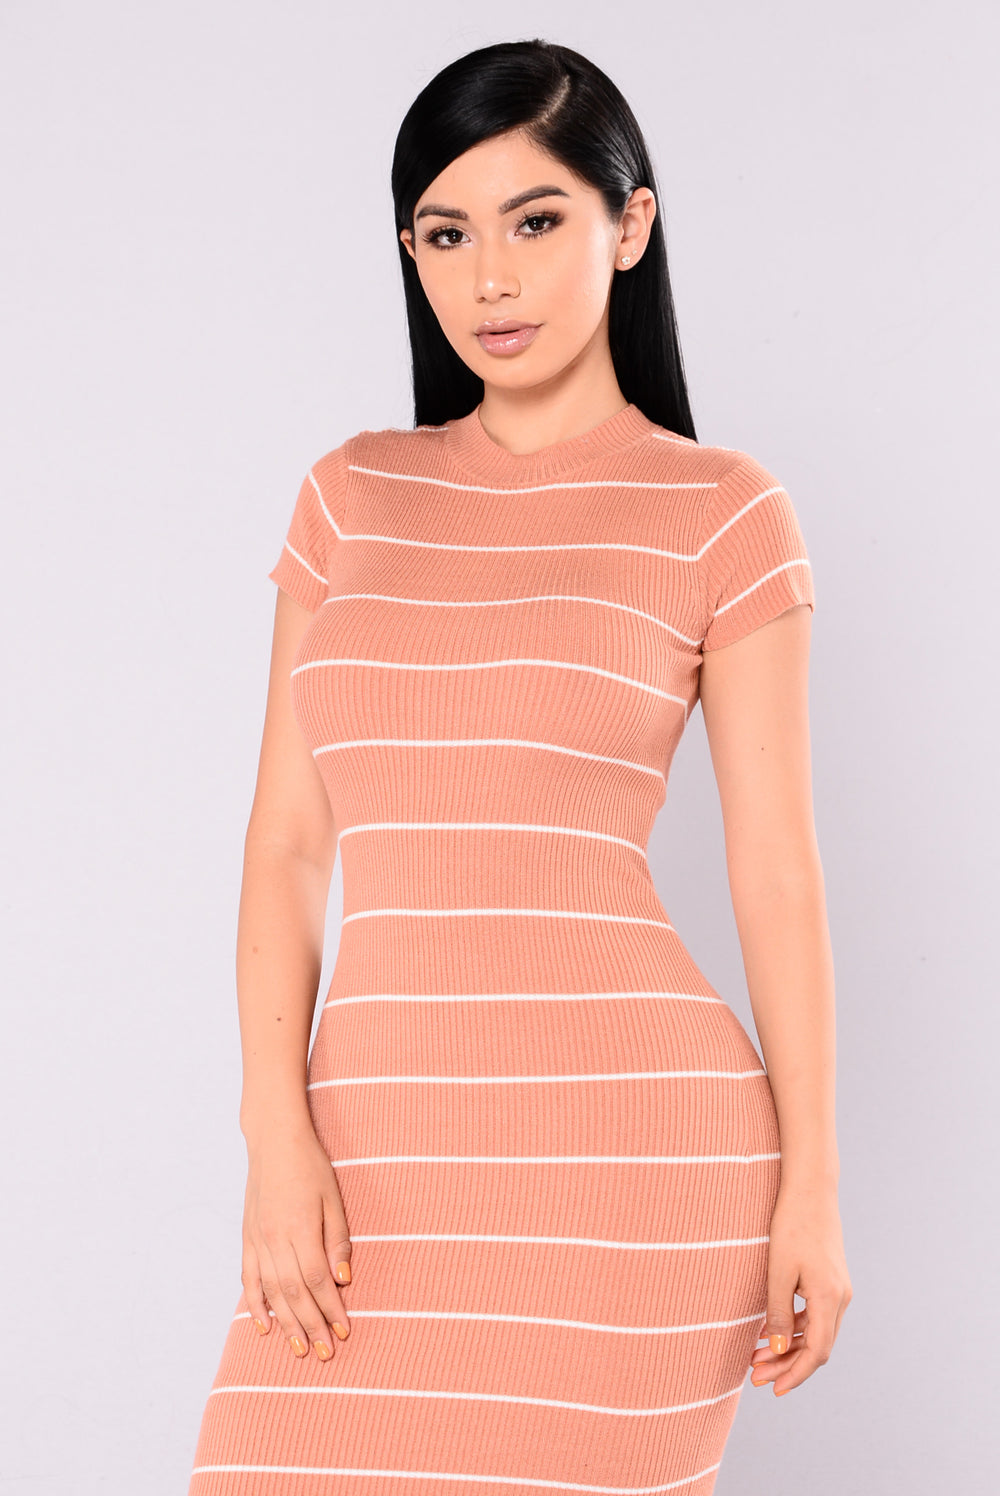 Raise The Bar Striped Dress - Nude/White